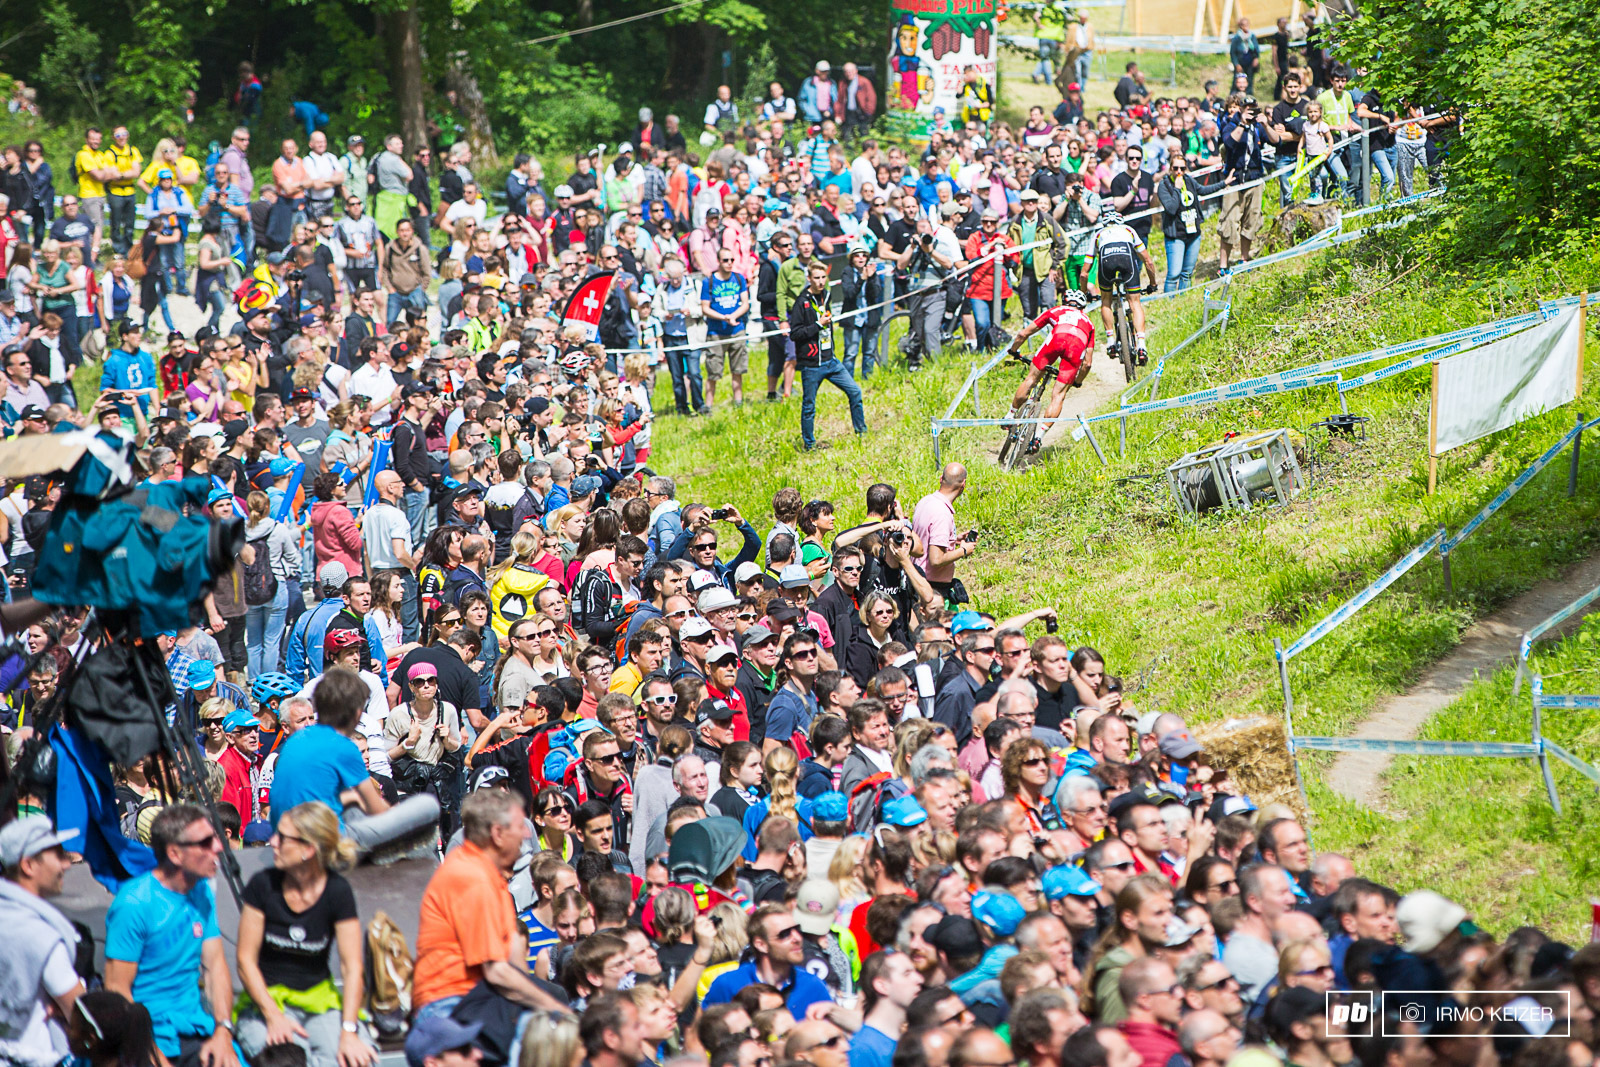 Nino Schurter and Julien Absalon battled hard for victory. The course was packed with crowds roaring riders forward.